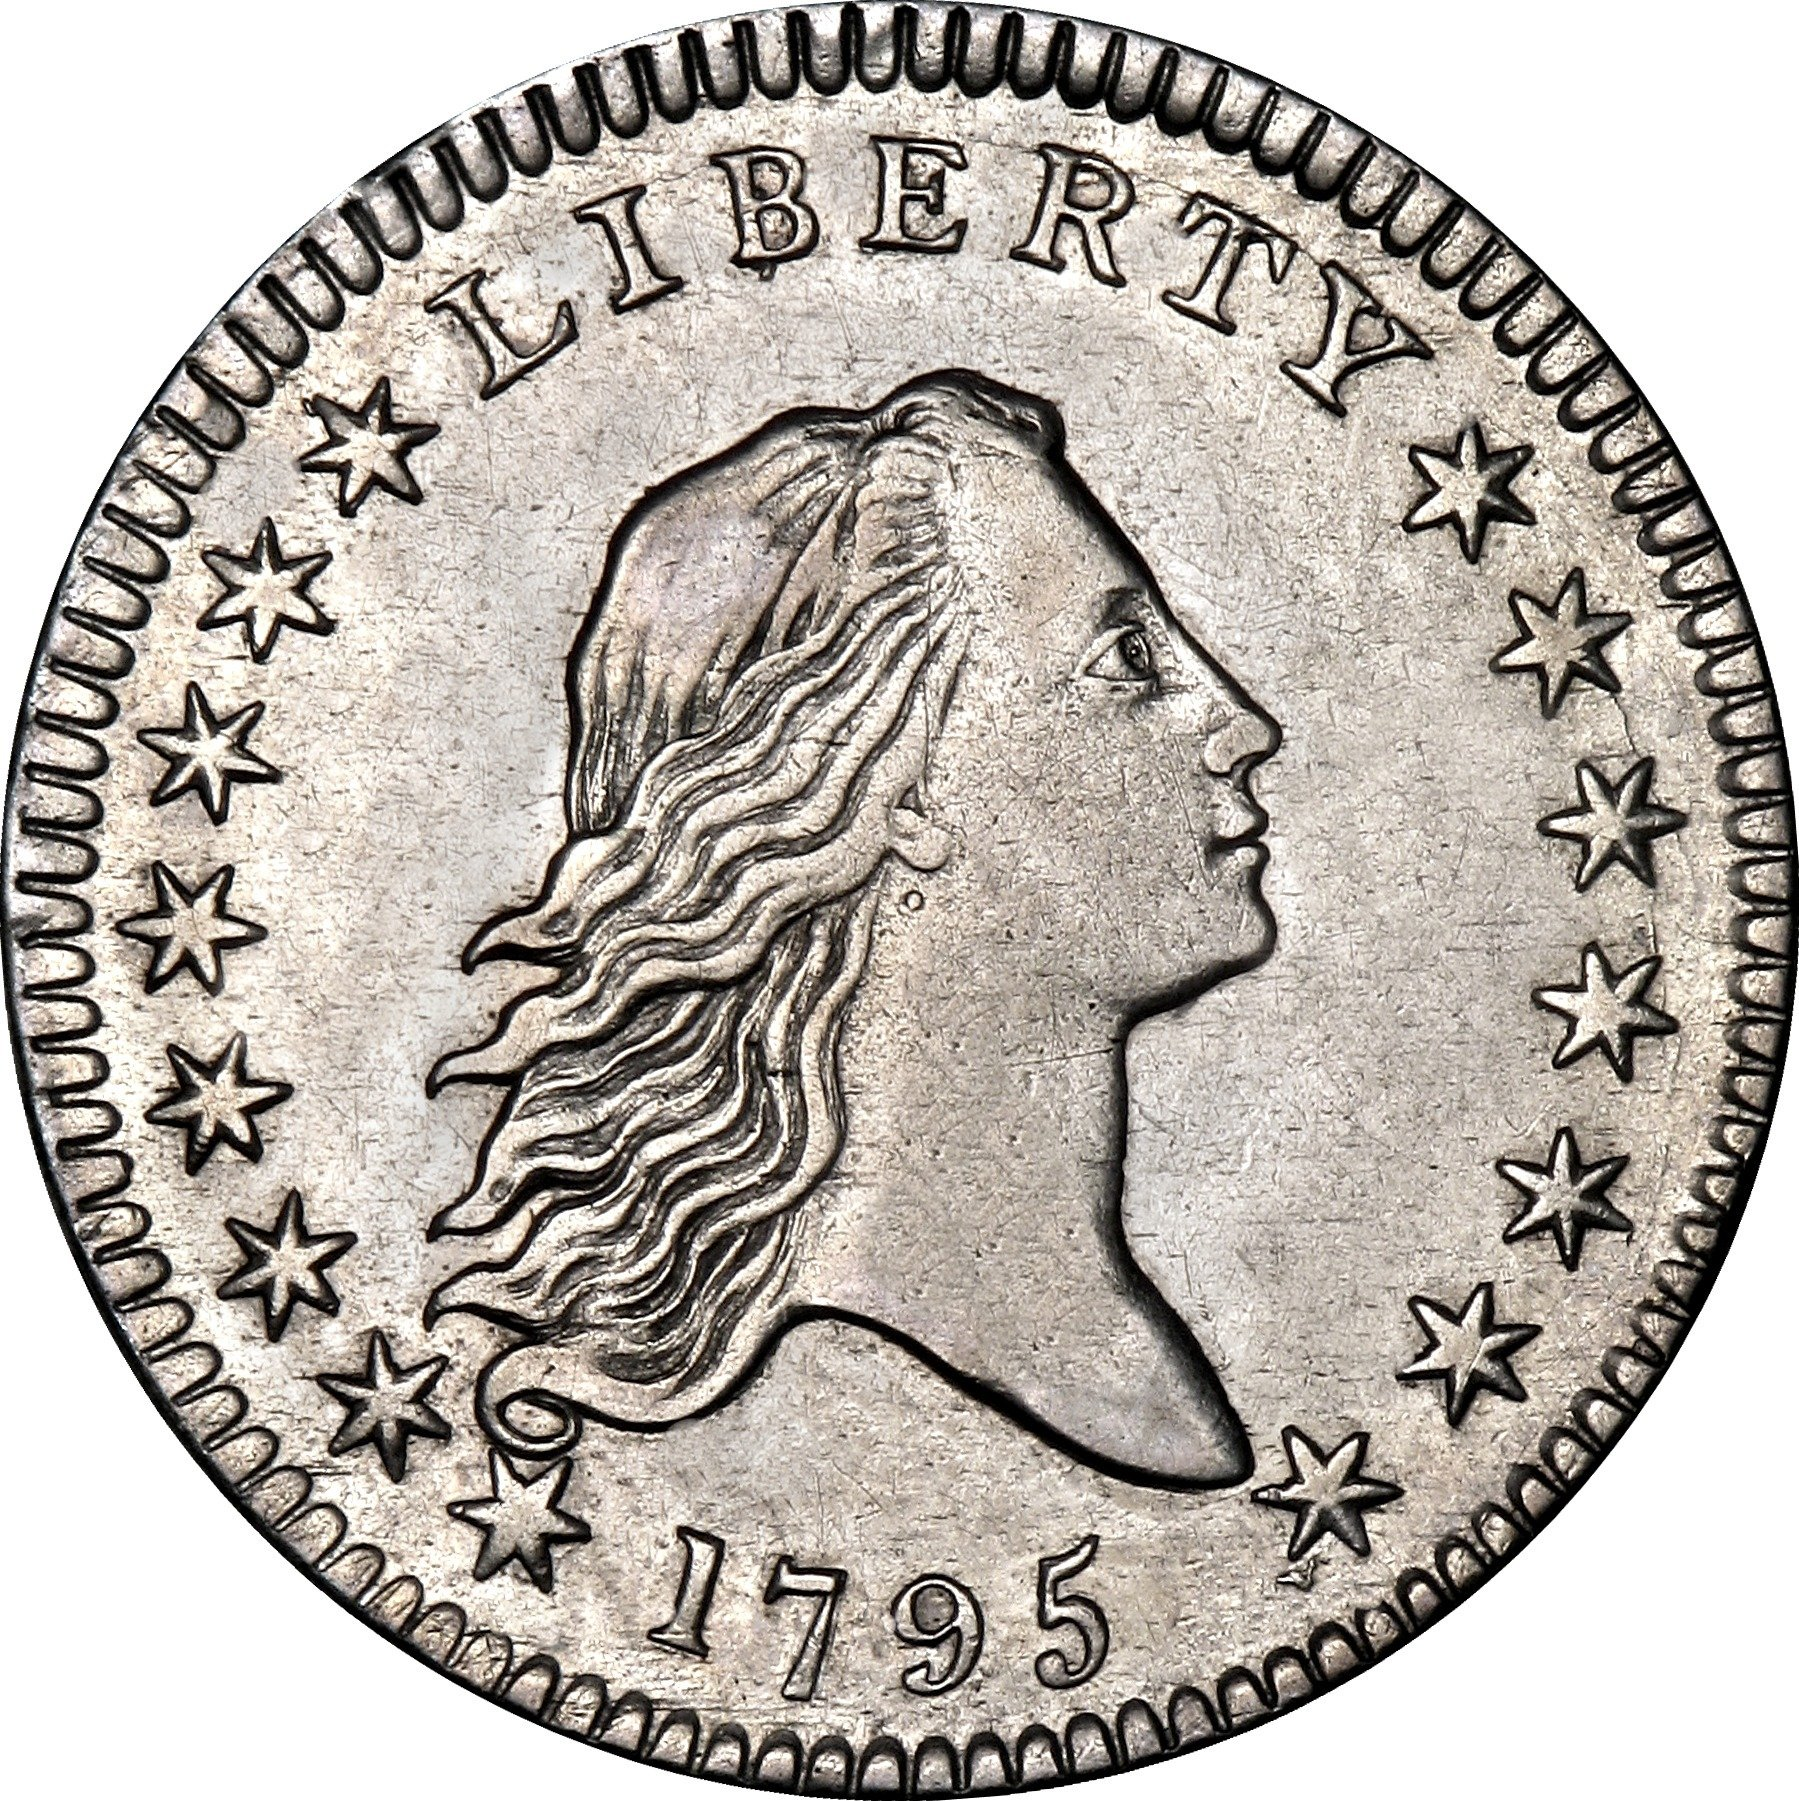 Rare coin dealing by Coins Plus